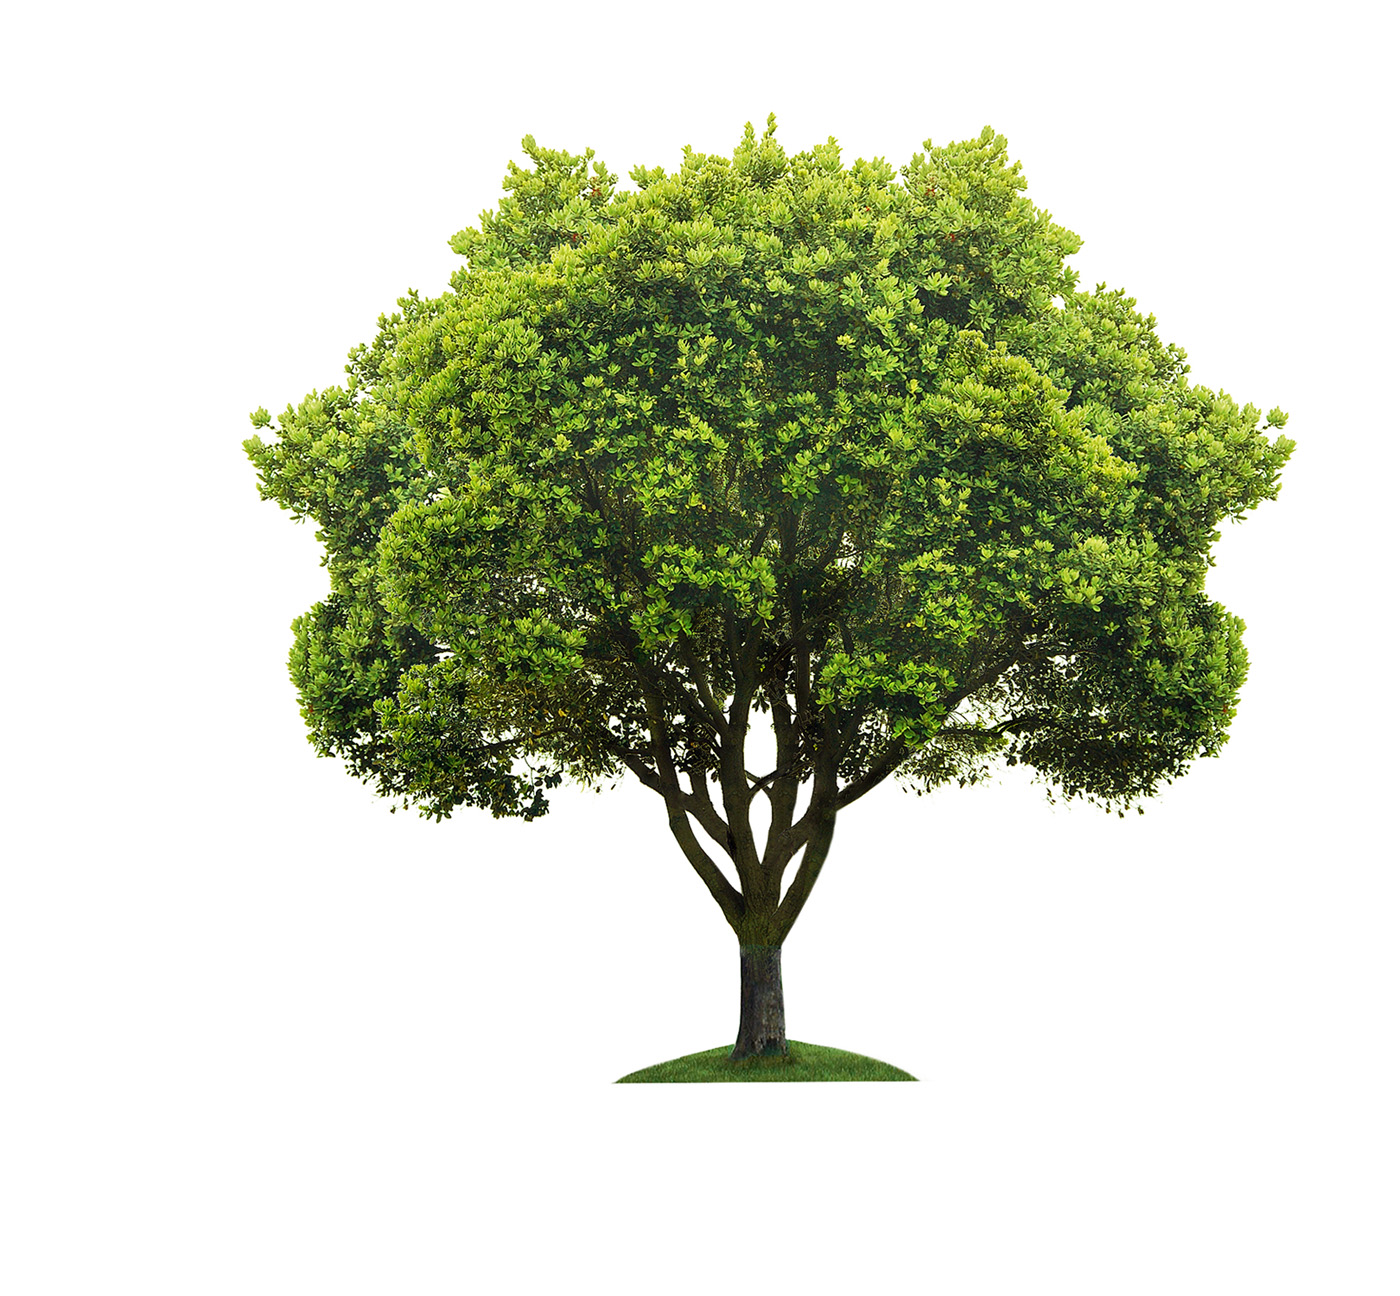 Front Elevation View Definition : The tree for my borough campaign has been extended eco